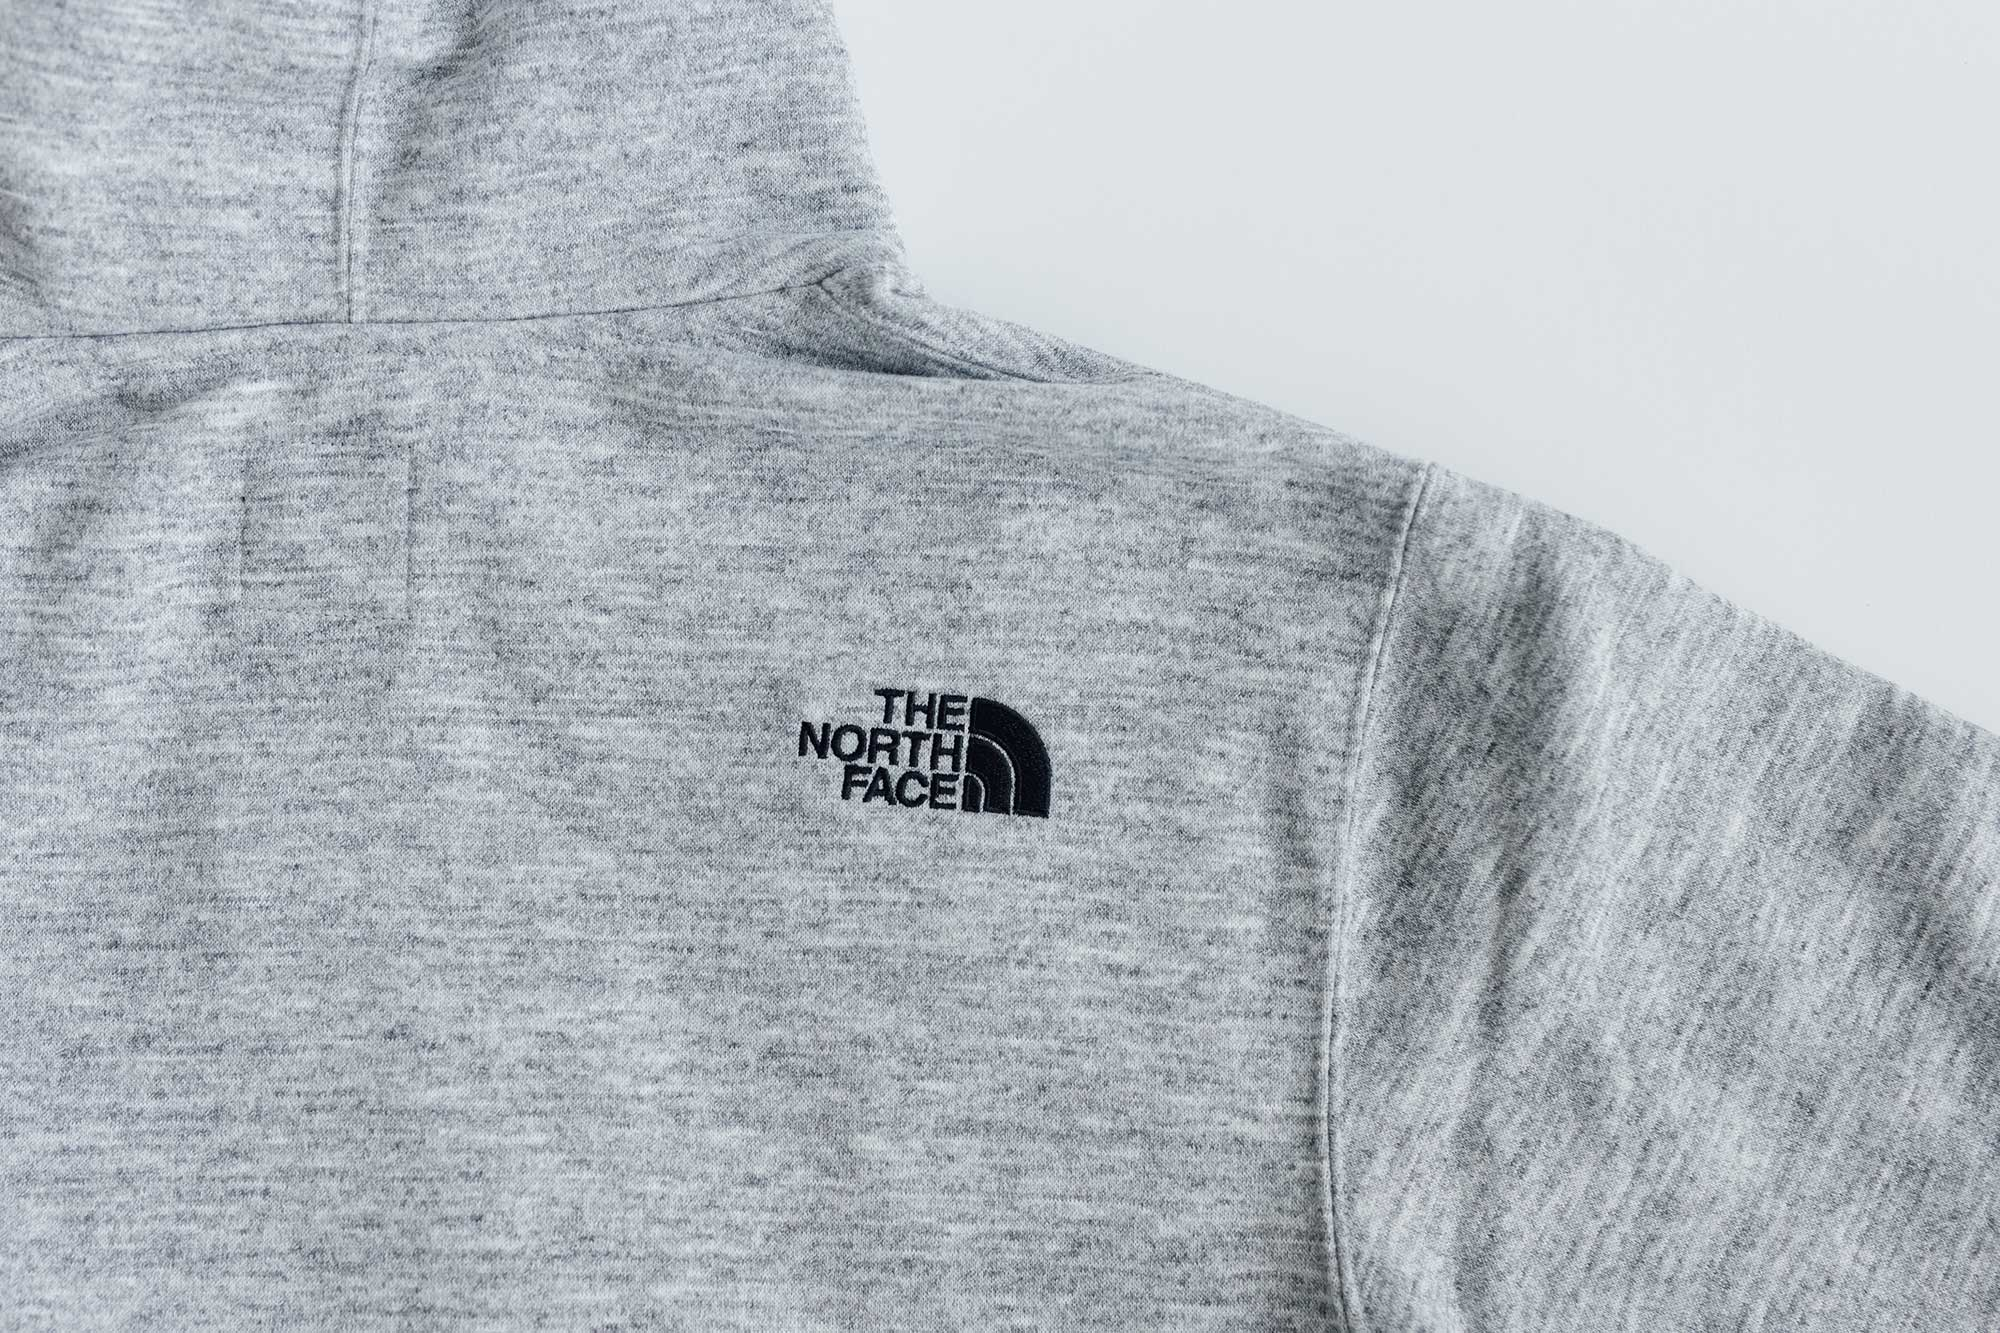 THE NORTH FACE スクエア ロゴ フーディー メンズ